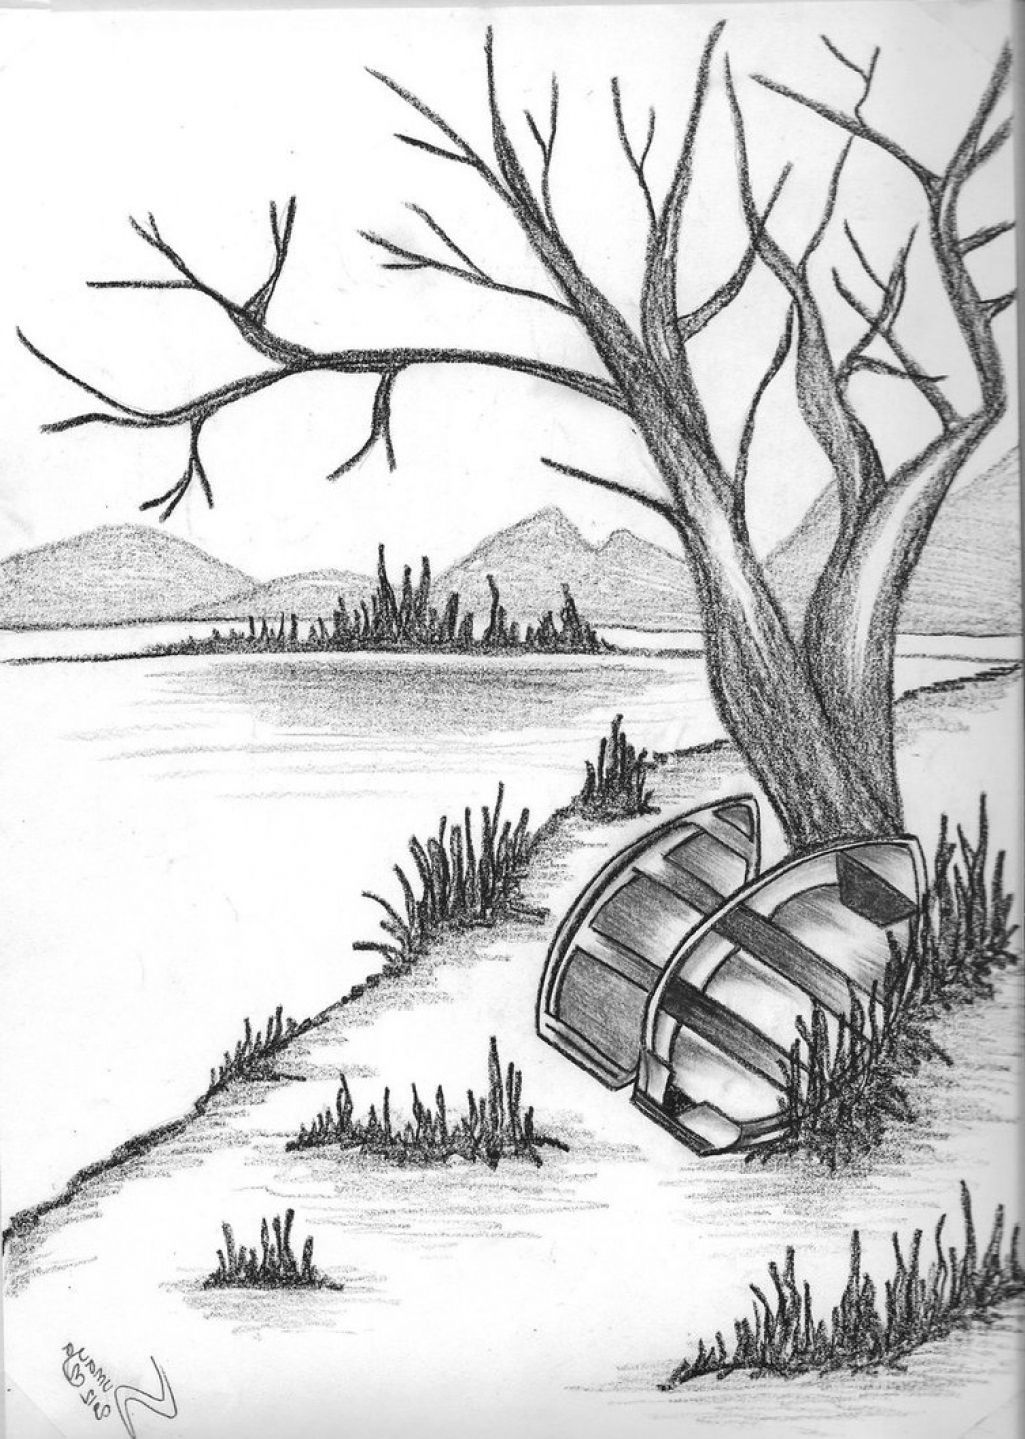 pencil drawing of natural scenery simple pencil drawings